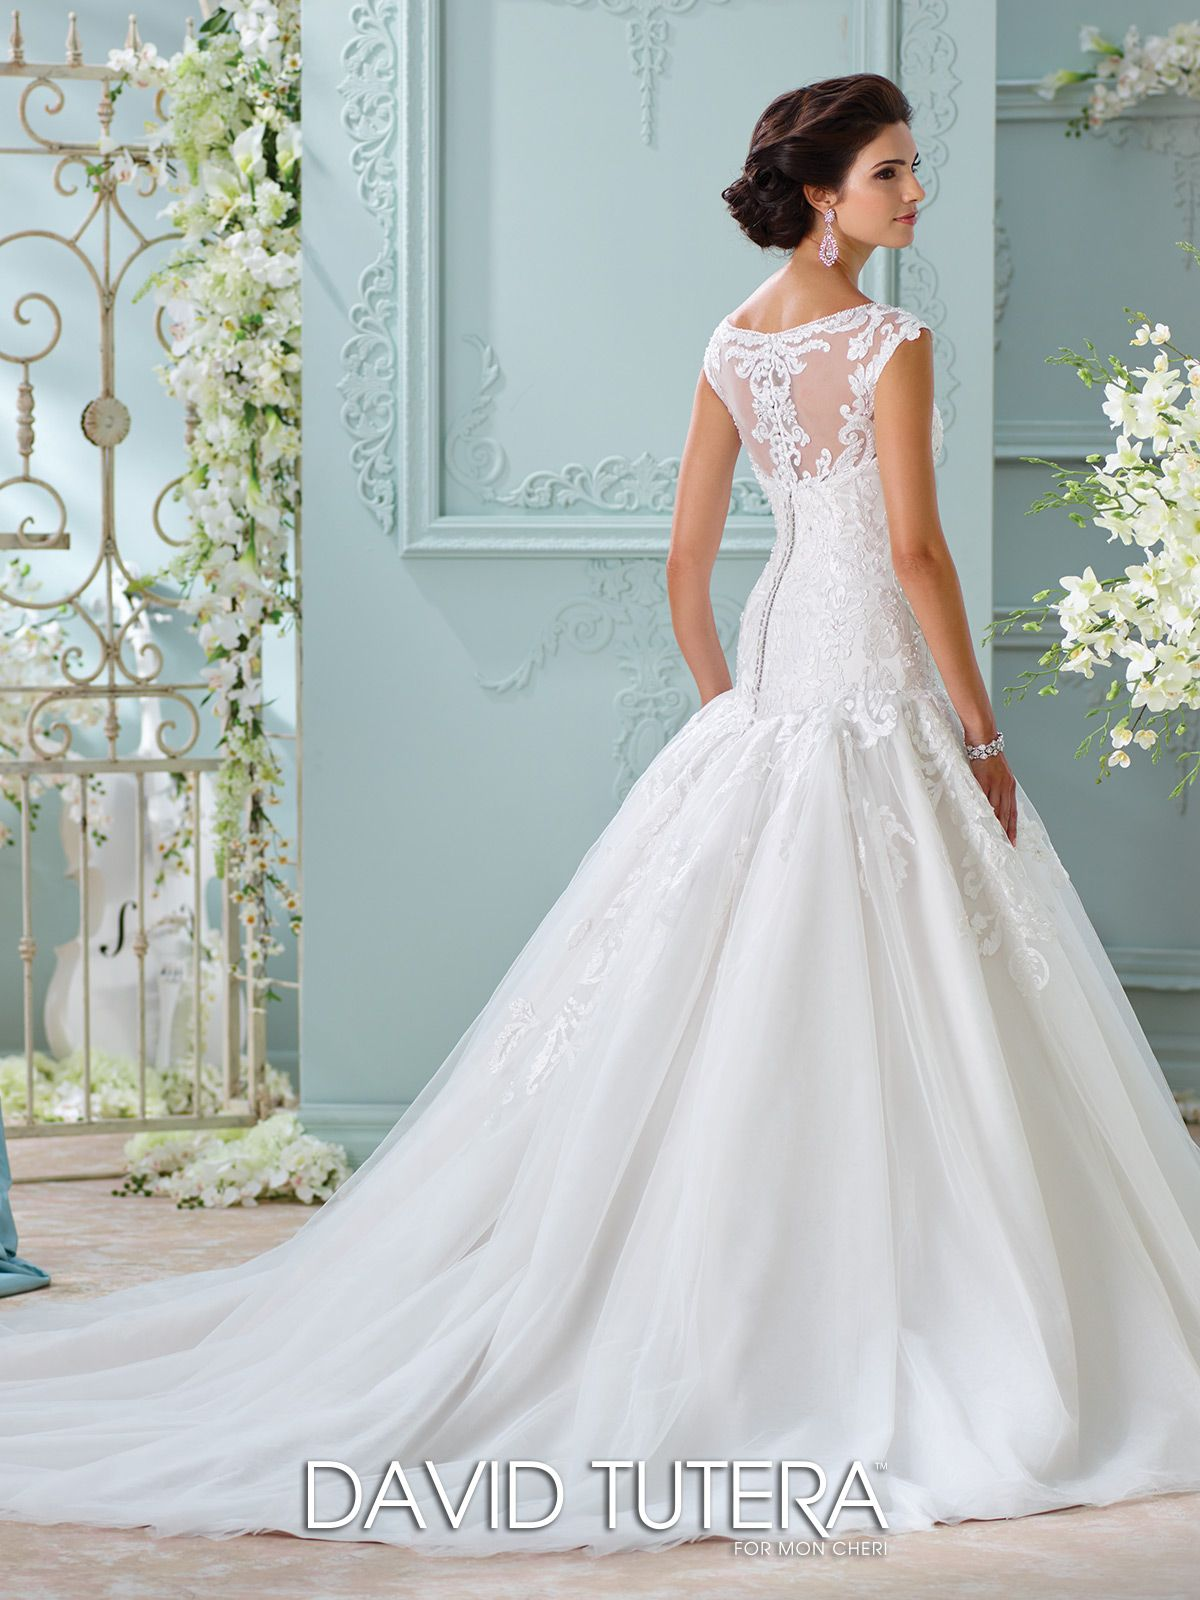 Contemporary Katniss Wedding Gown Component - All Wedding Dresses ...